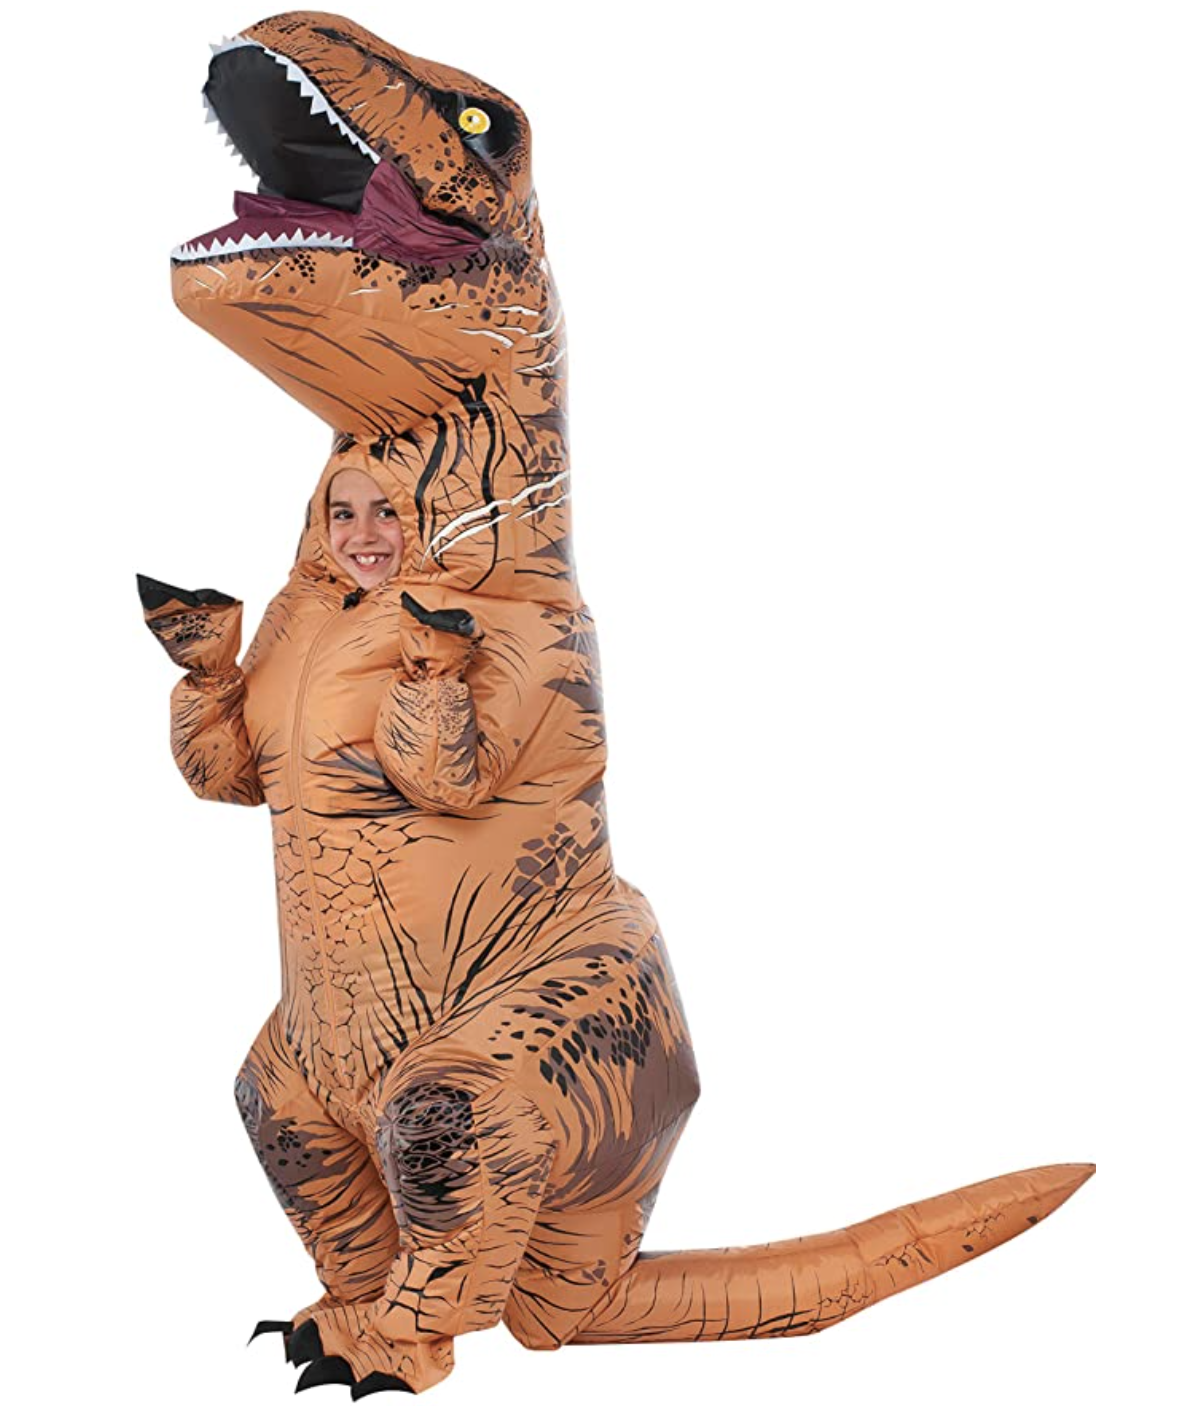 A child's face peeks out of an inflatable dinosaur costume